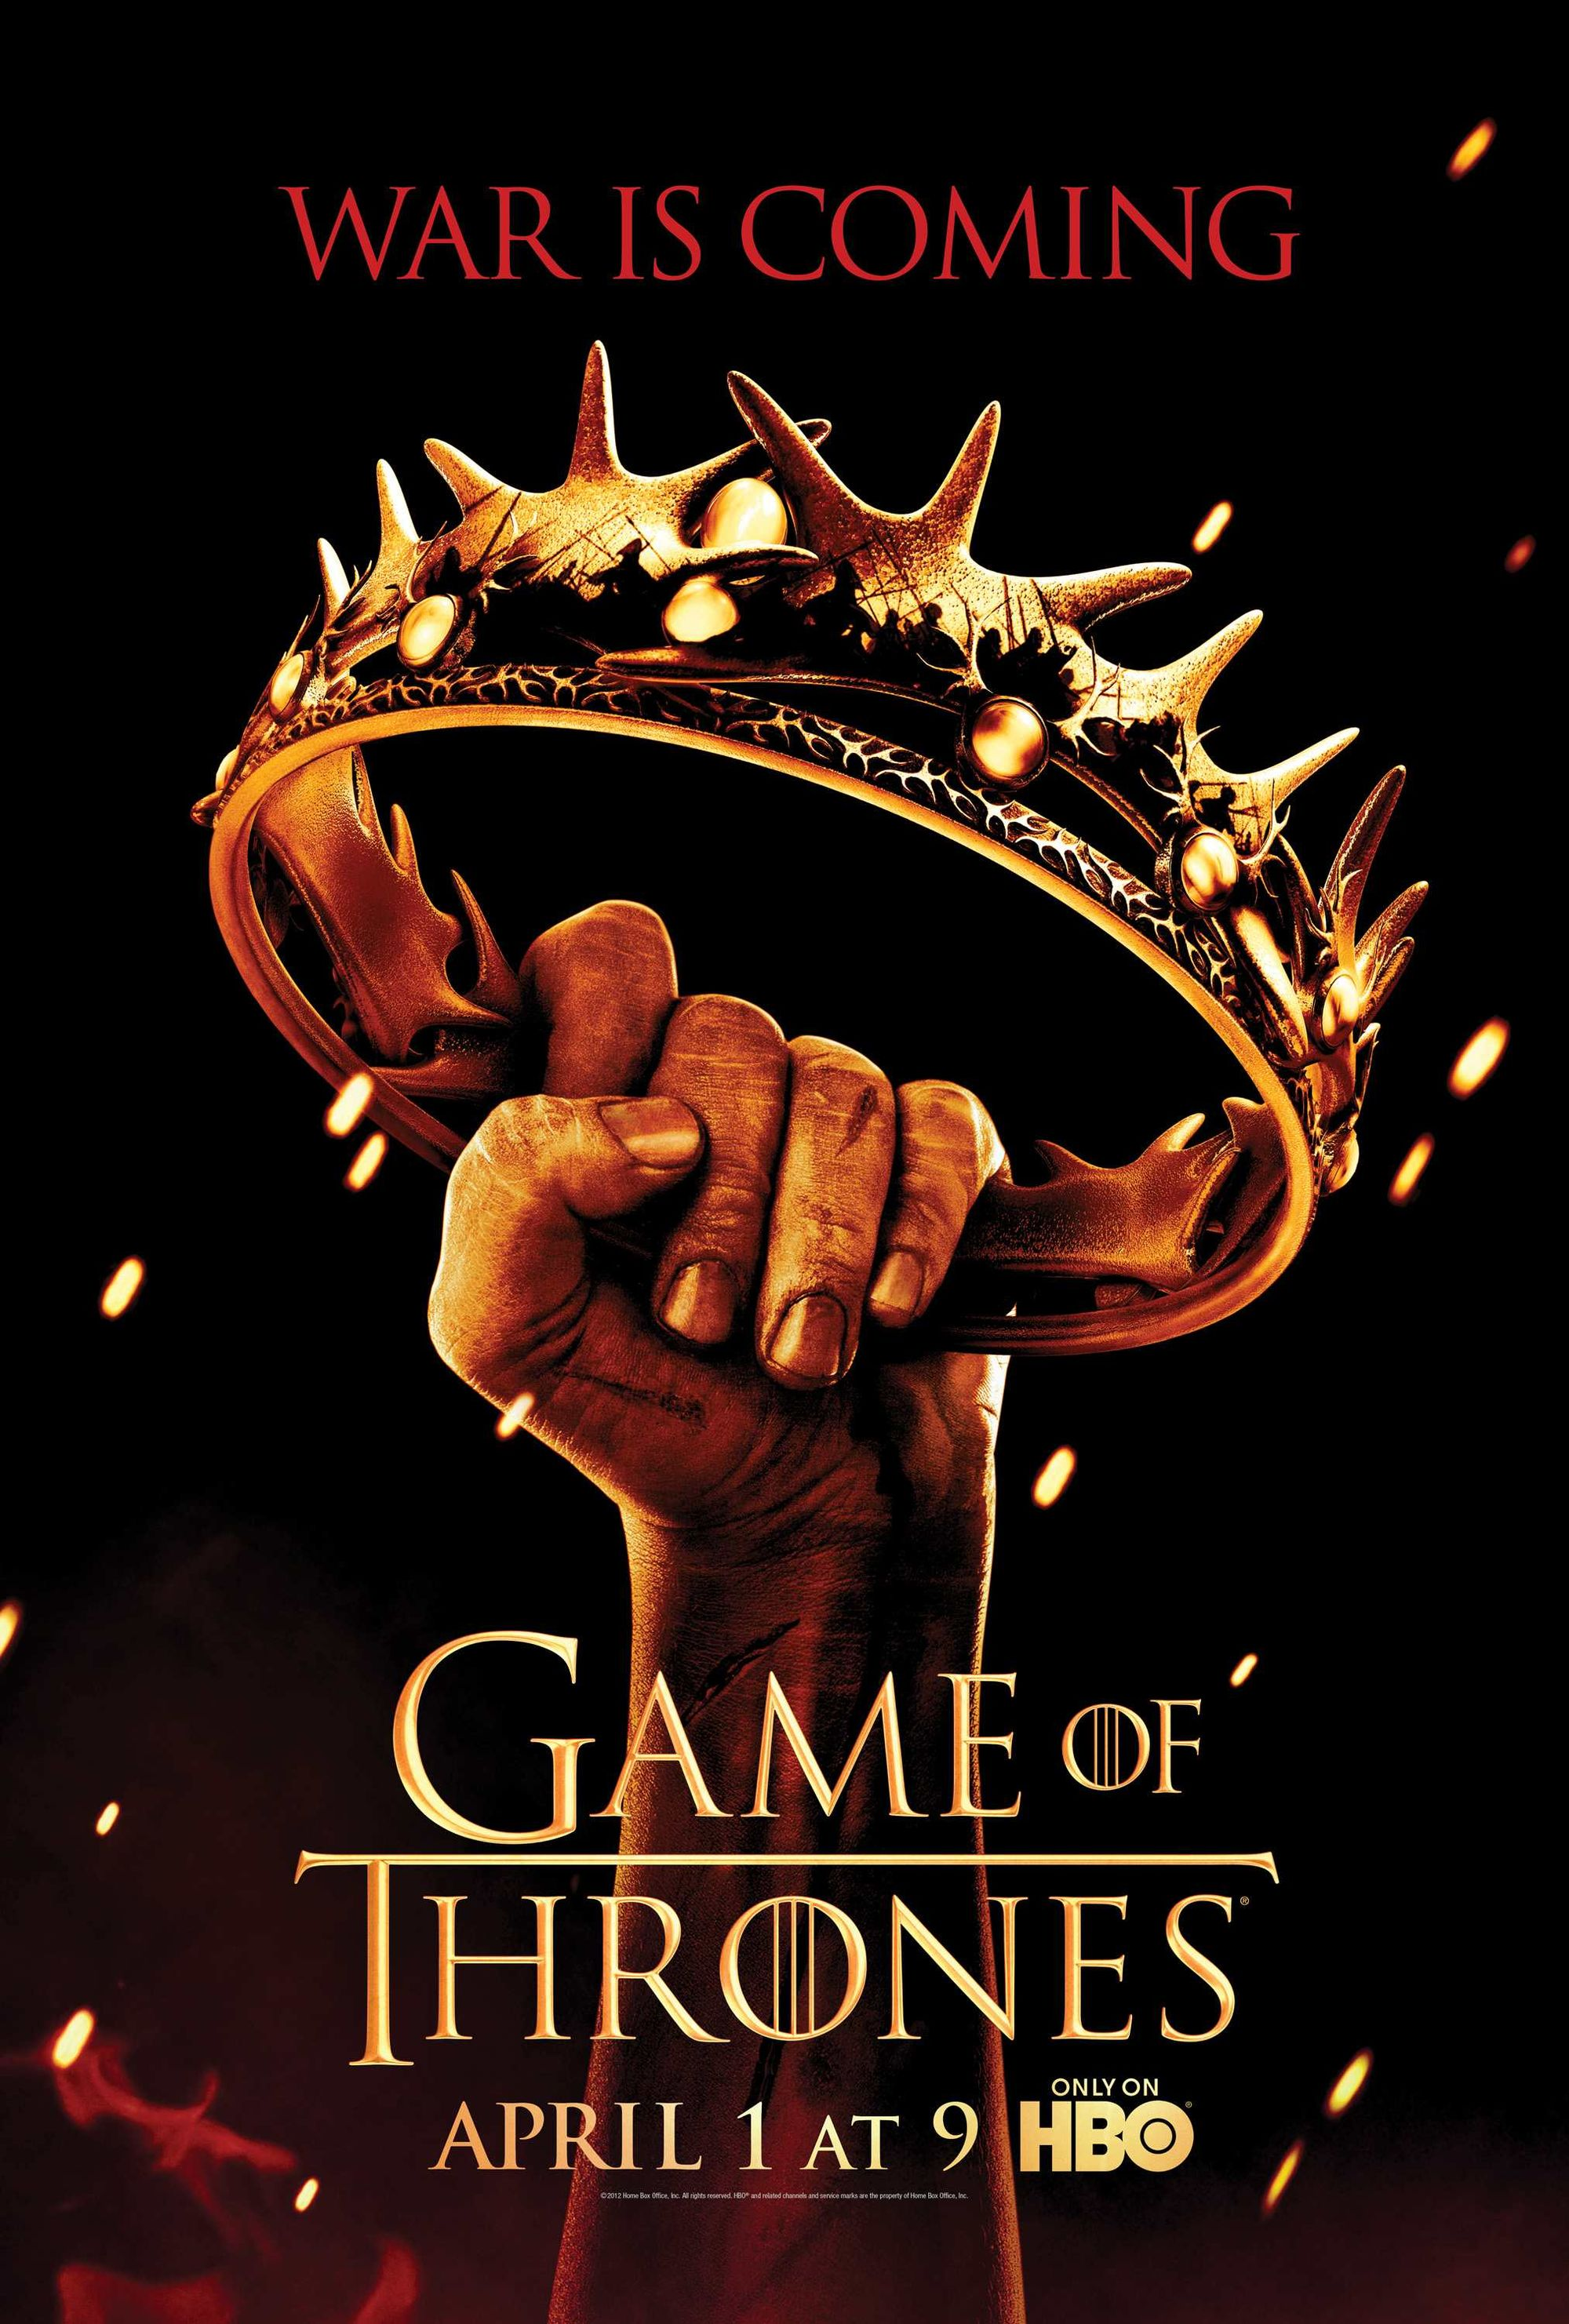 GAME OF THRONES  season 2  Maisie plays Arya Stark in this epic story. Nine noble families fight for control over the mythical lands of Westeros, while an ancient enemy returns after being dormant for thousands of years.    Click for more